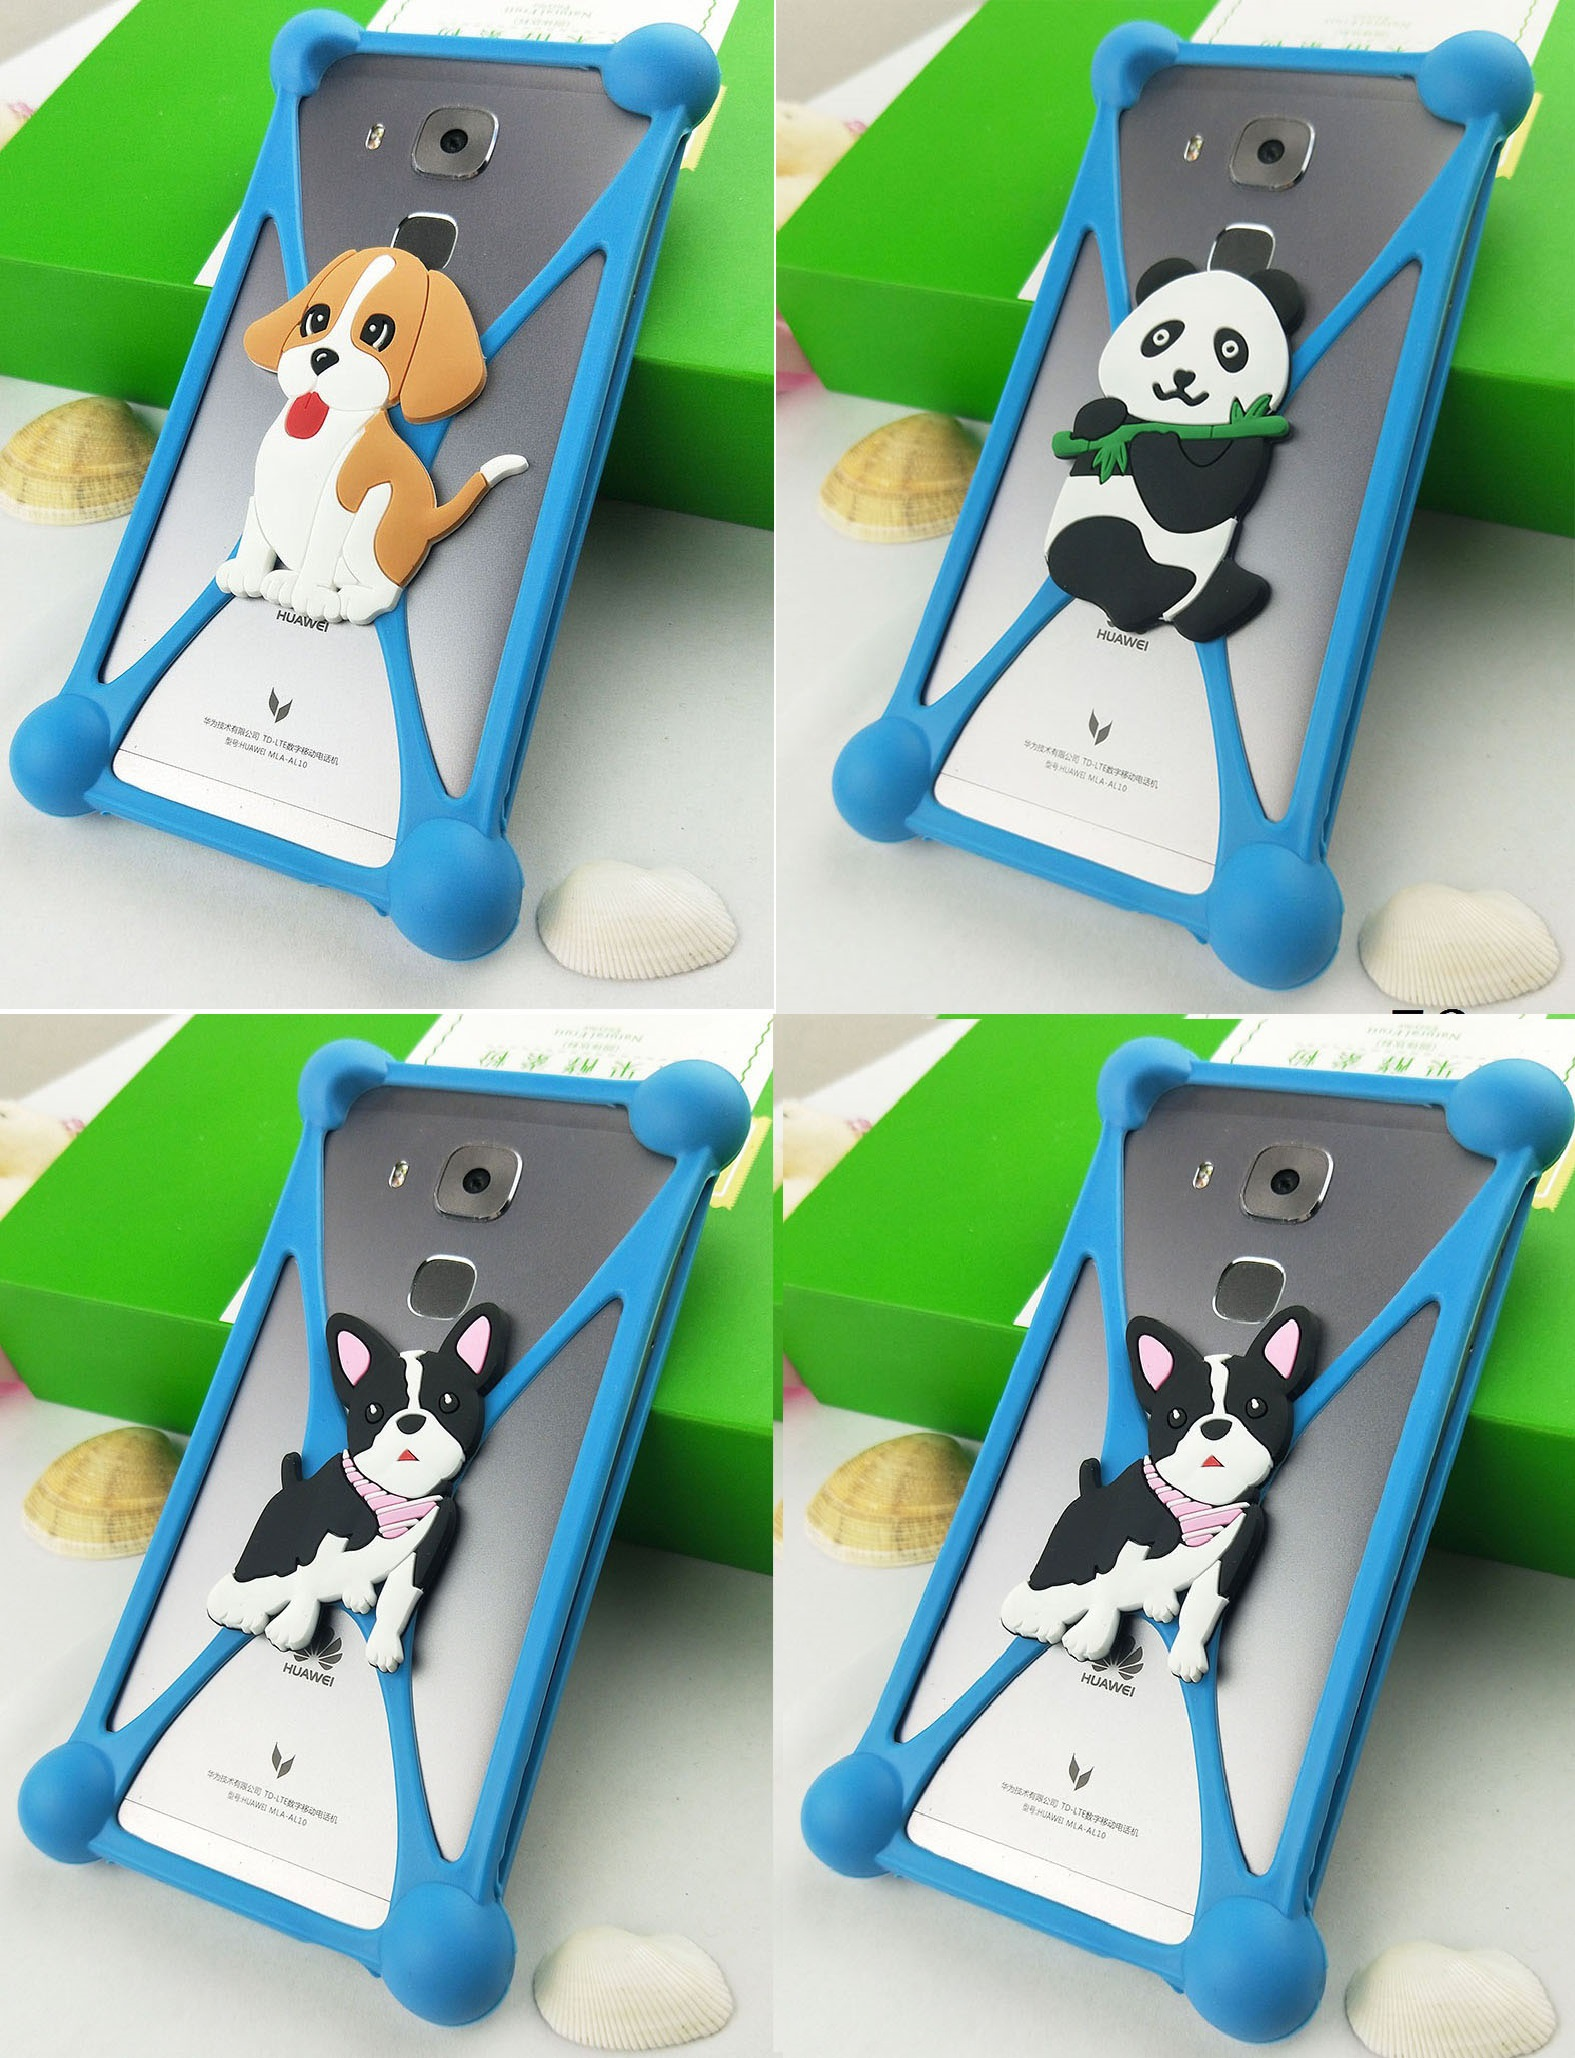 Universal Protective Phone Case Cover For <font><b>BQ</b></font> MOBILE <font><b>BQ</b></font>-5519L 5004G 5015L 5004G 4501G 4500L <font><b>4583</b></font> 4585 5011G image